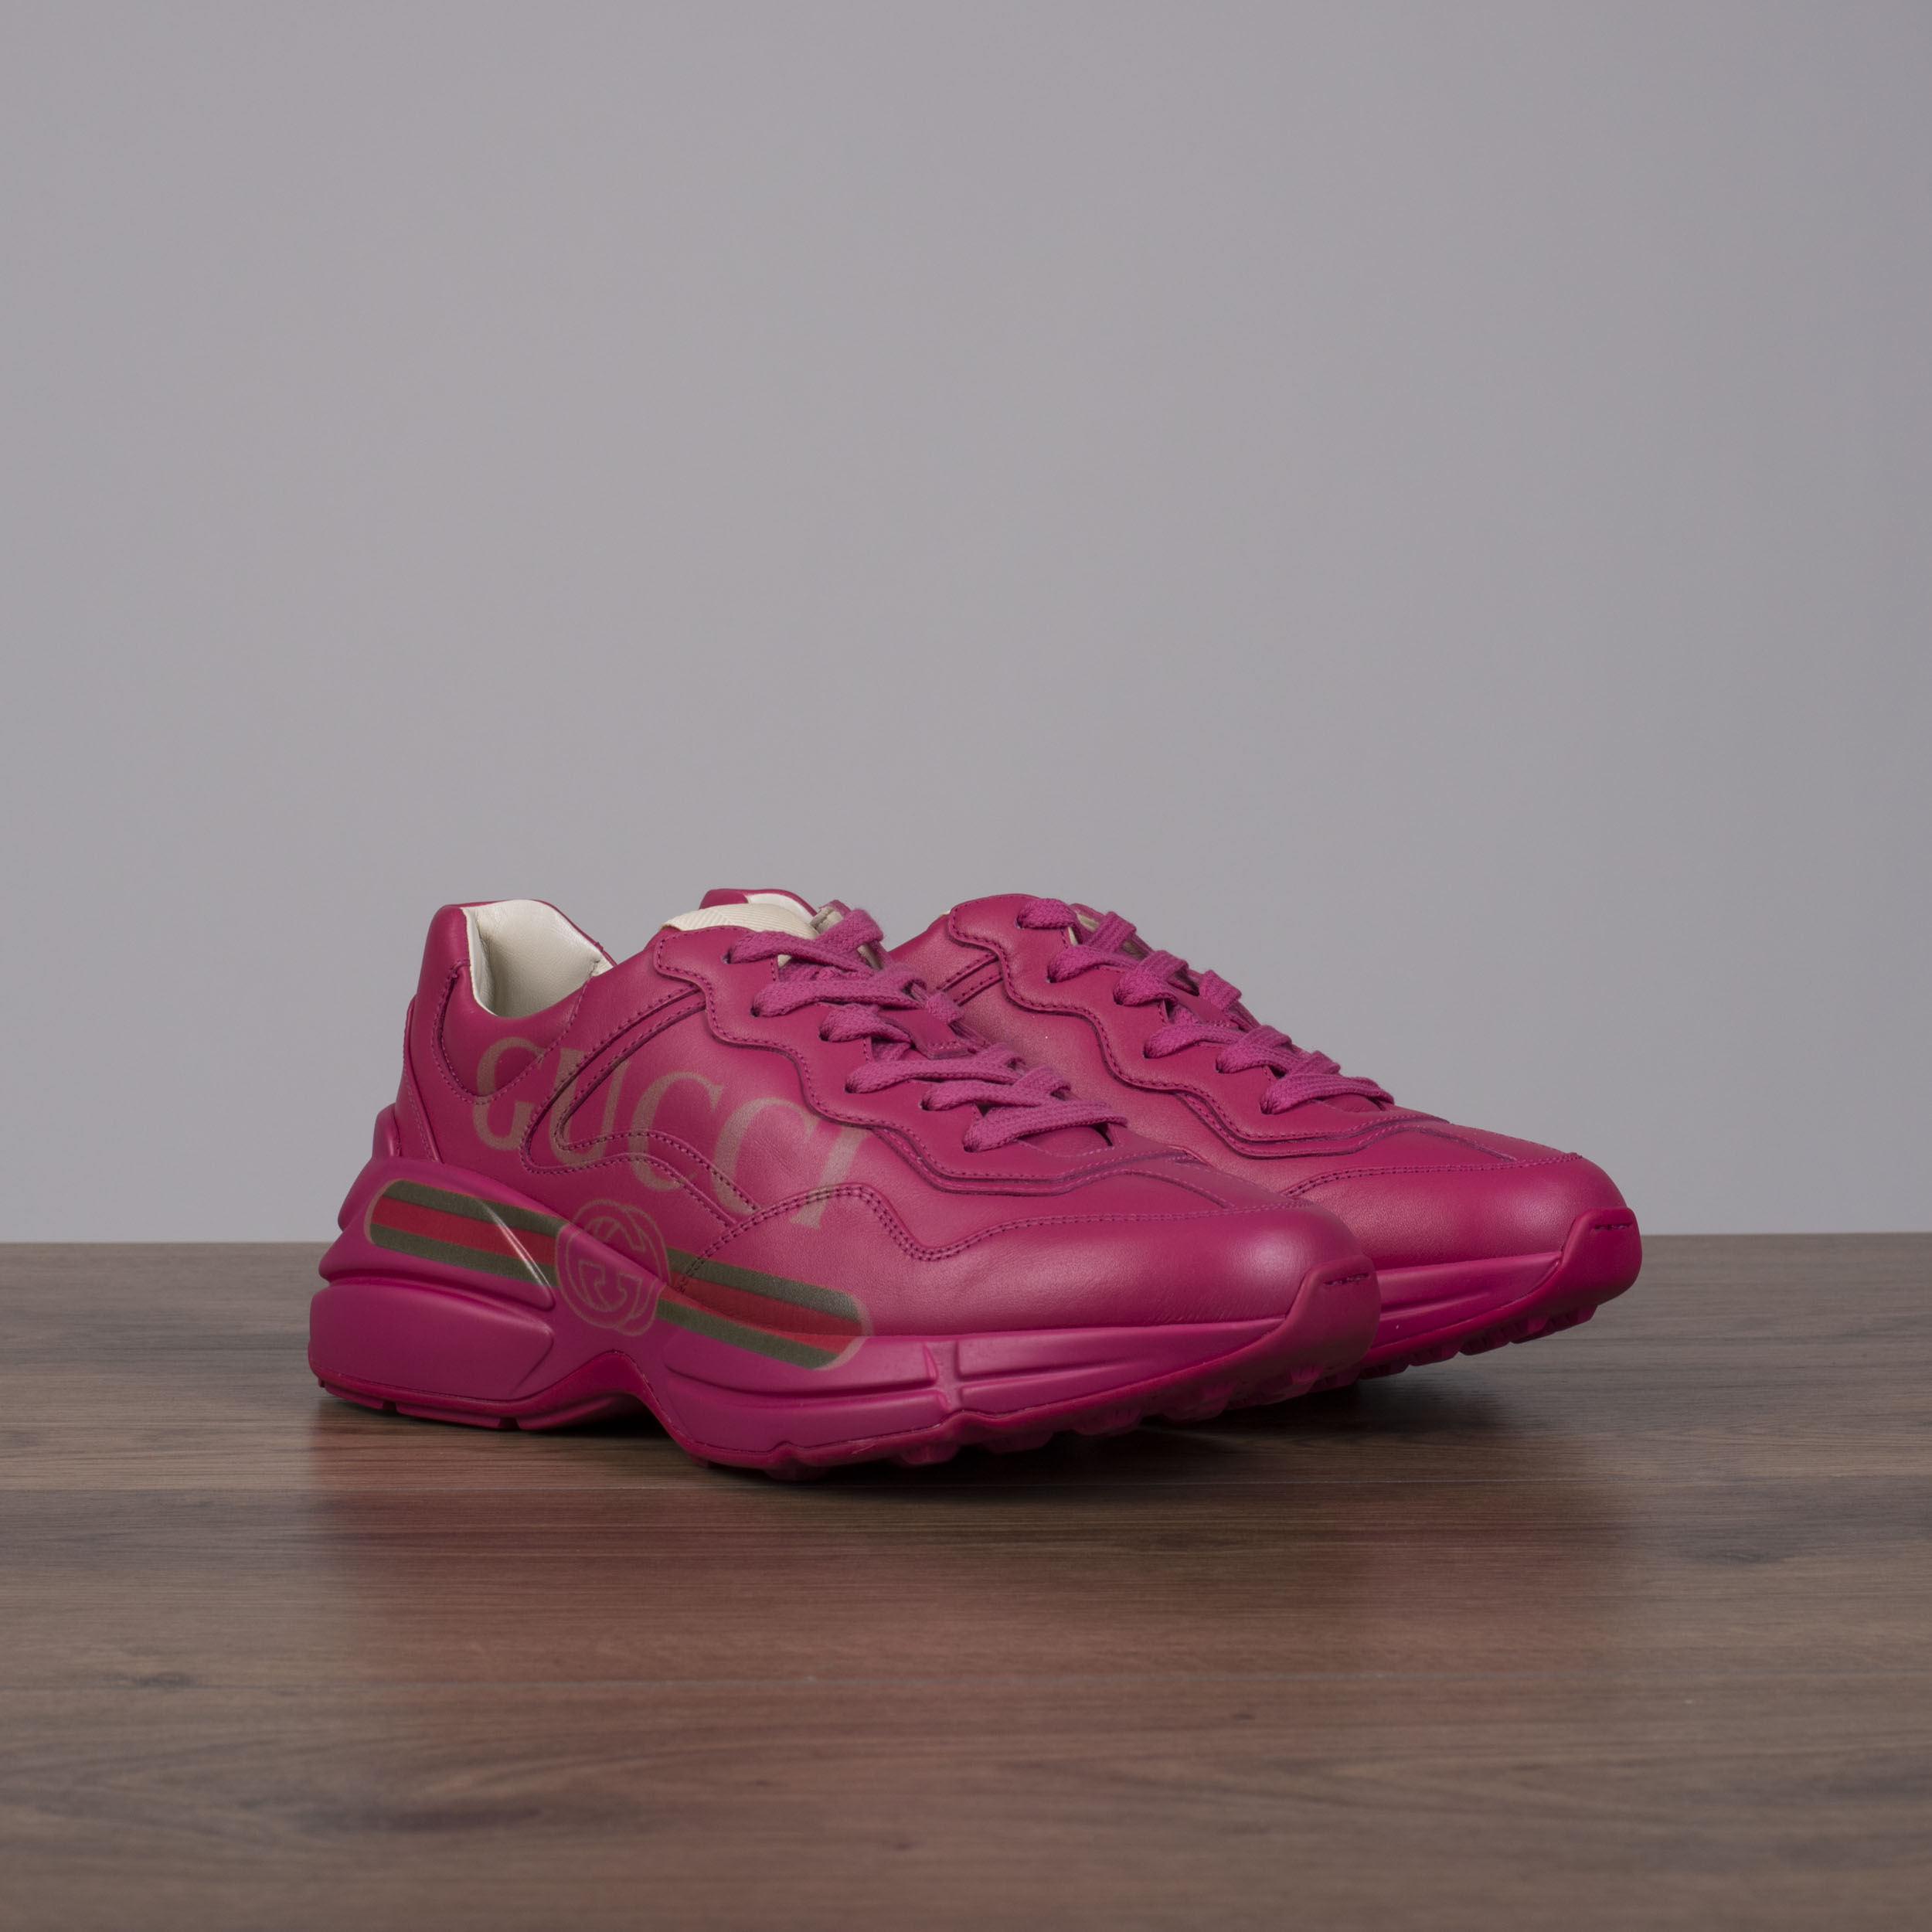 37b183eda63 GUCCI 890  Women s Rhyton Gucci Logo Sneakers In Pink Leather